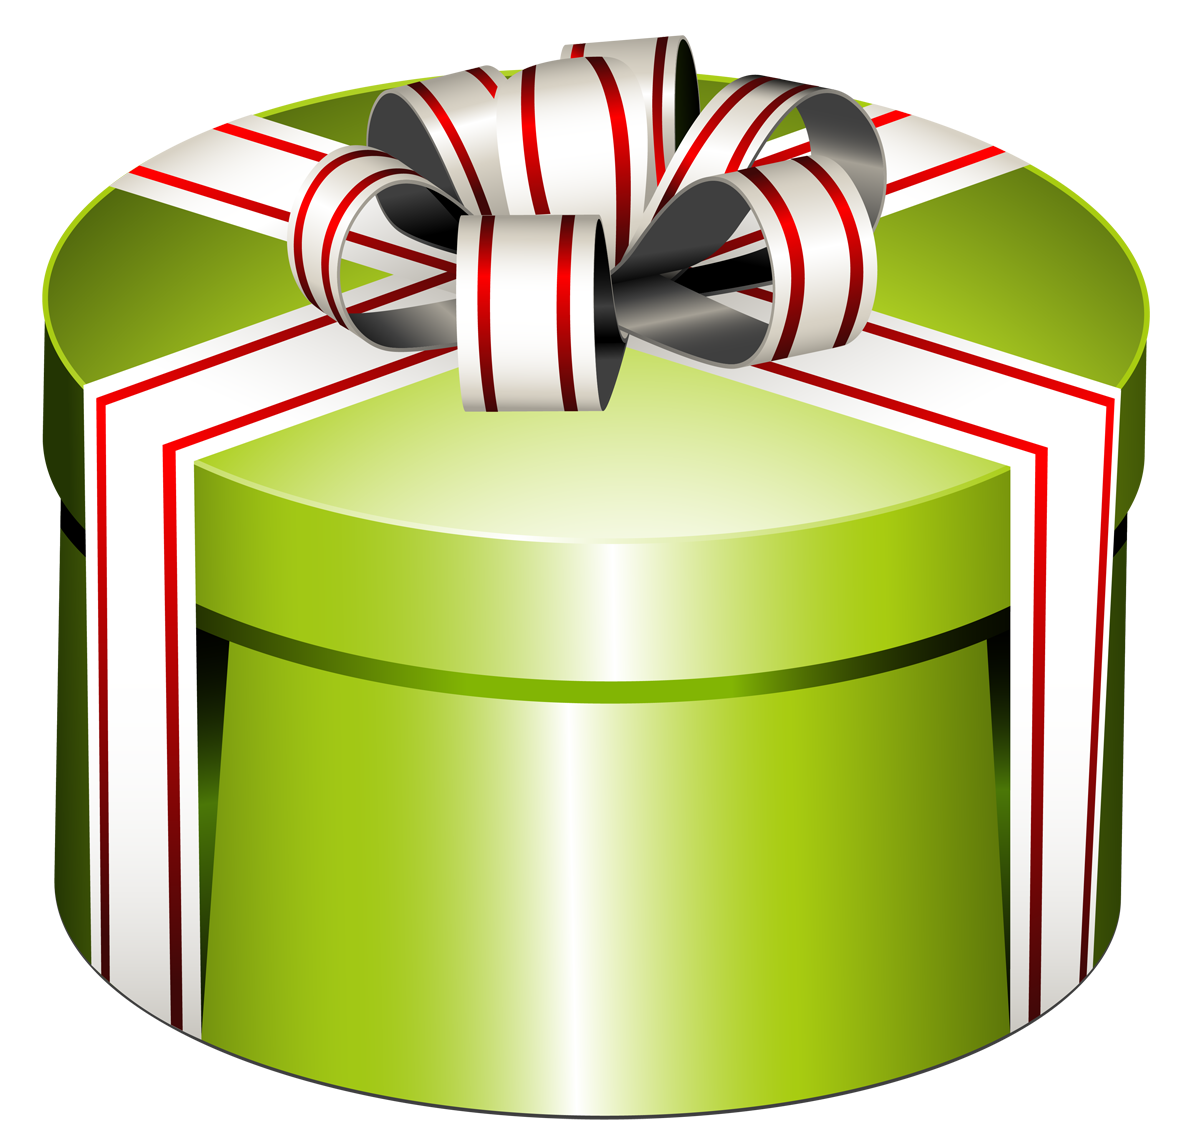 1200x1136 Green Round Present Box With Bow Png Clipartu200b Gallery